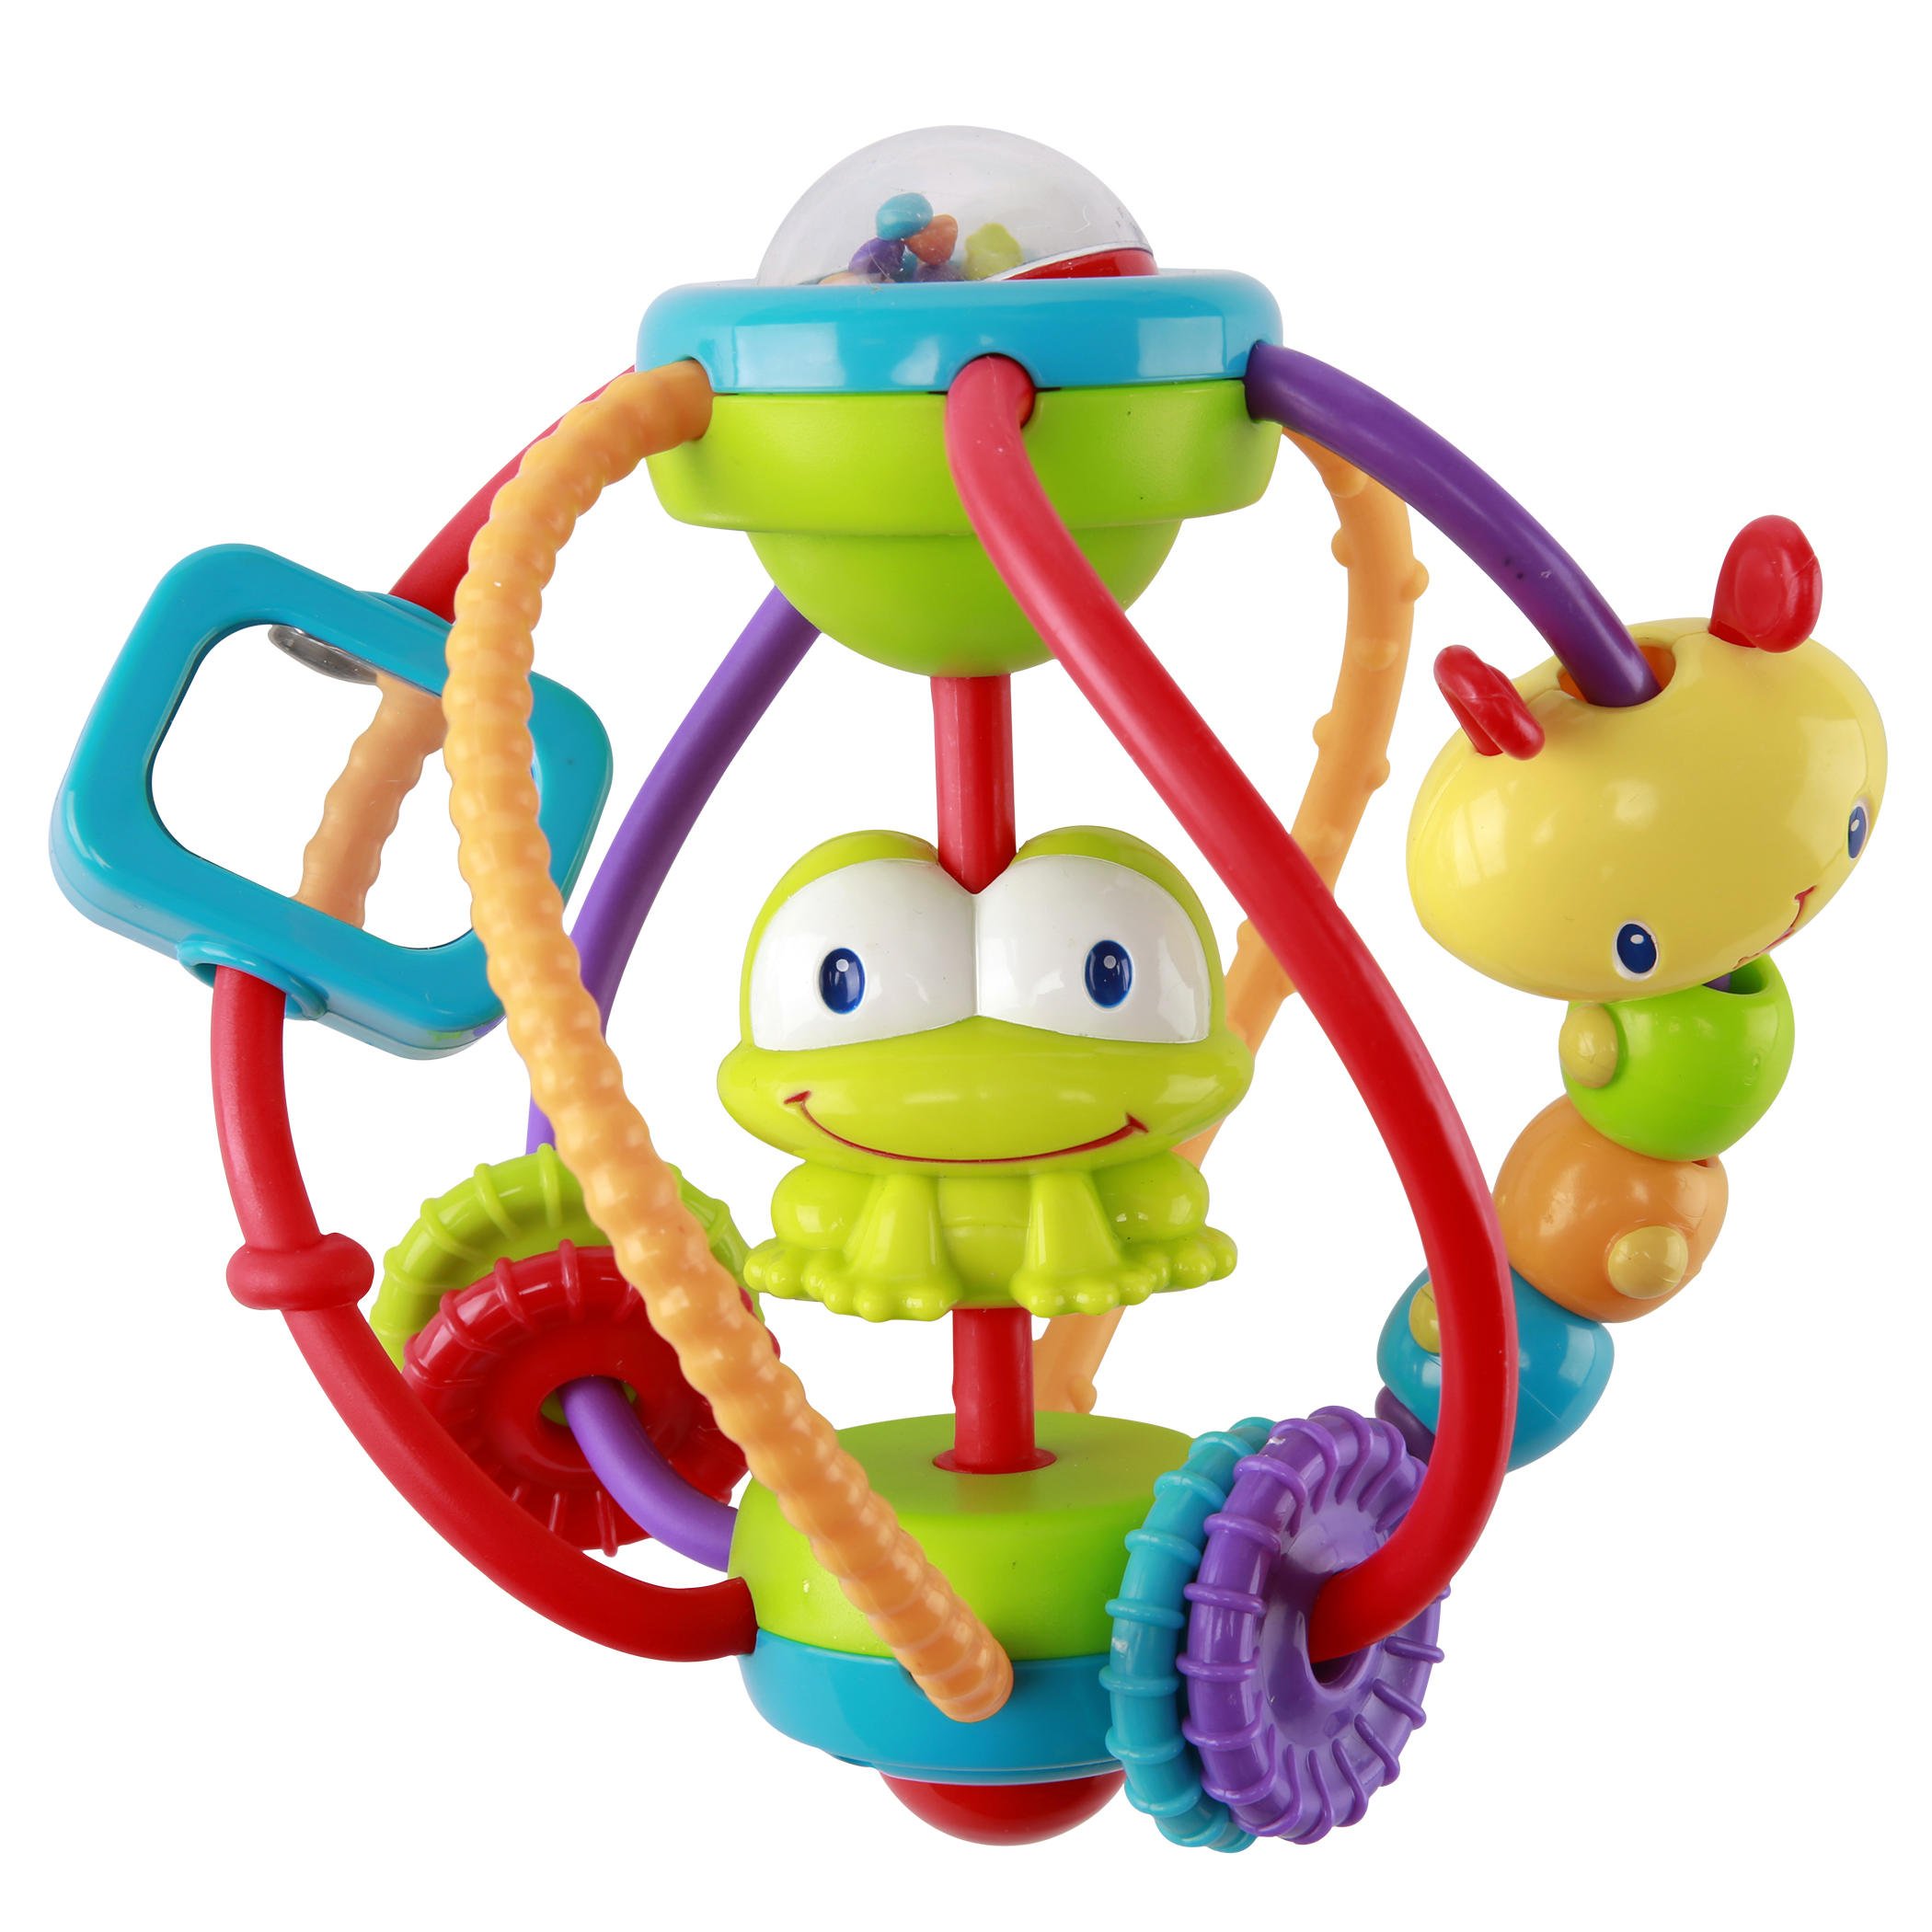 Clack & Slide Activity Ball™ Toy